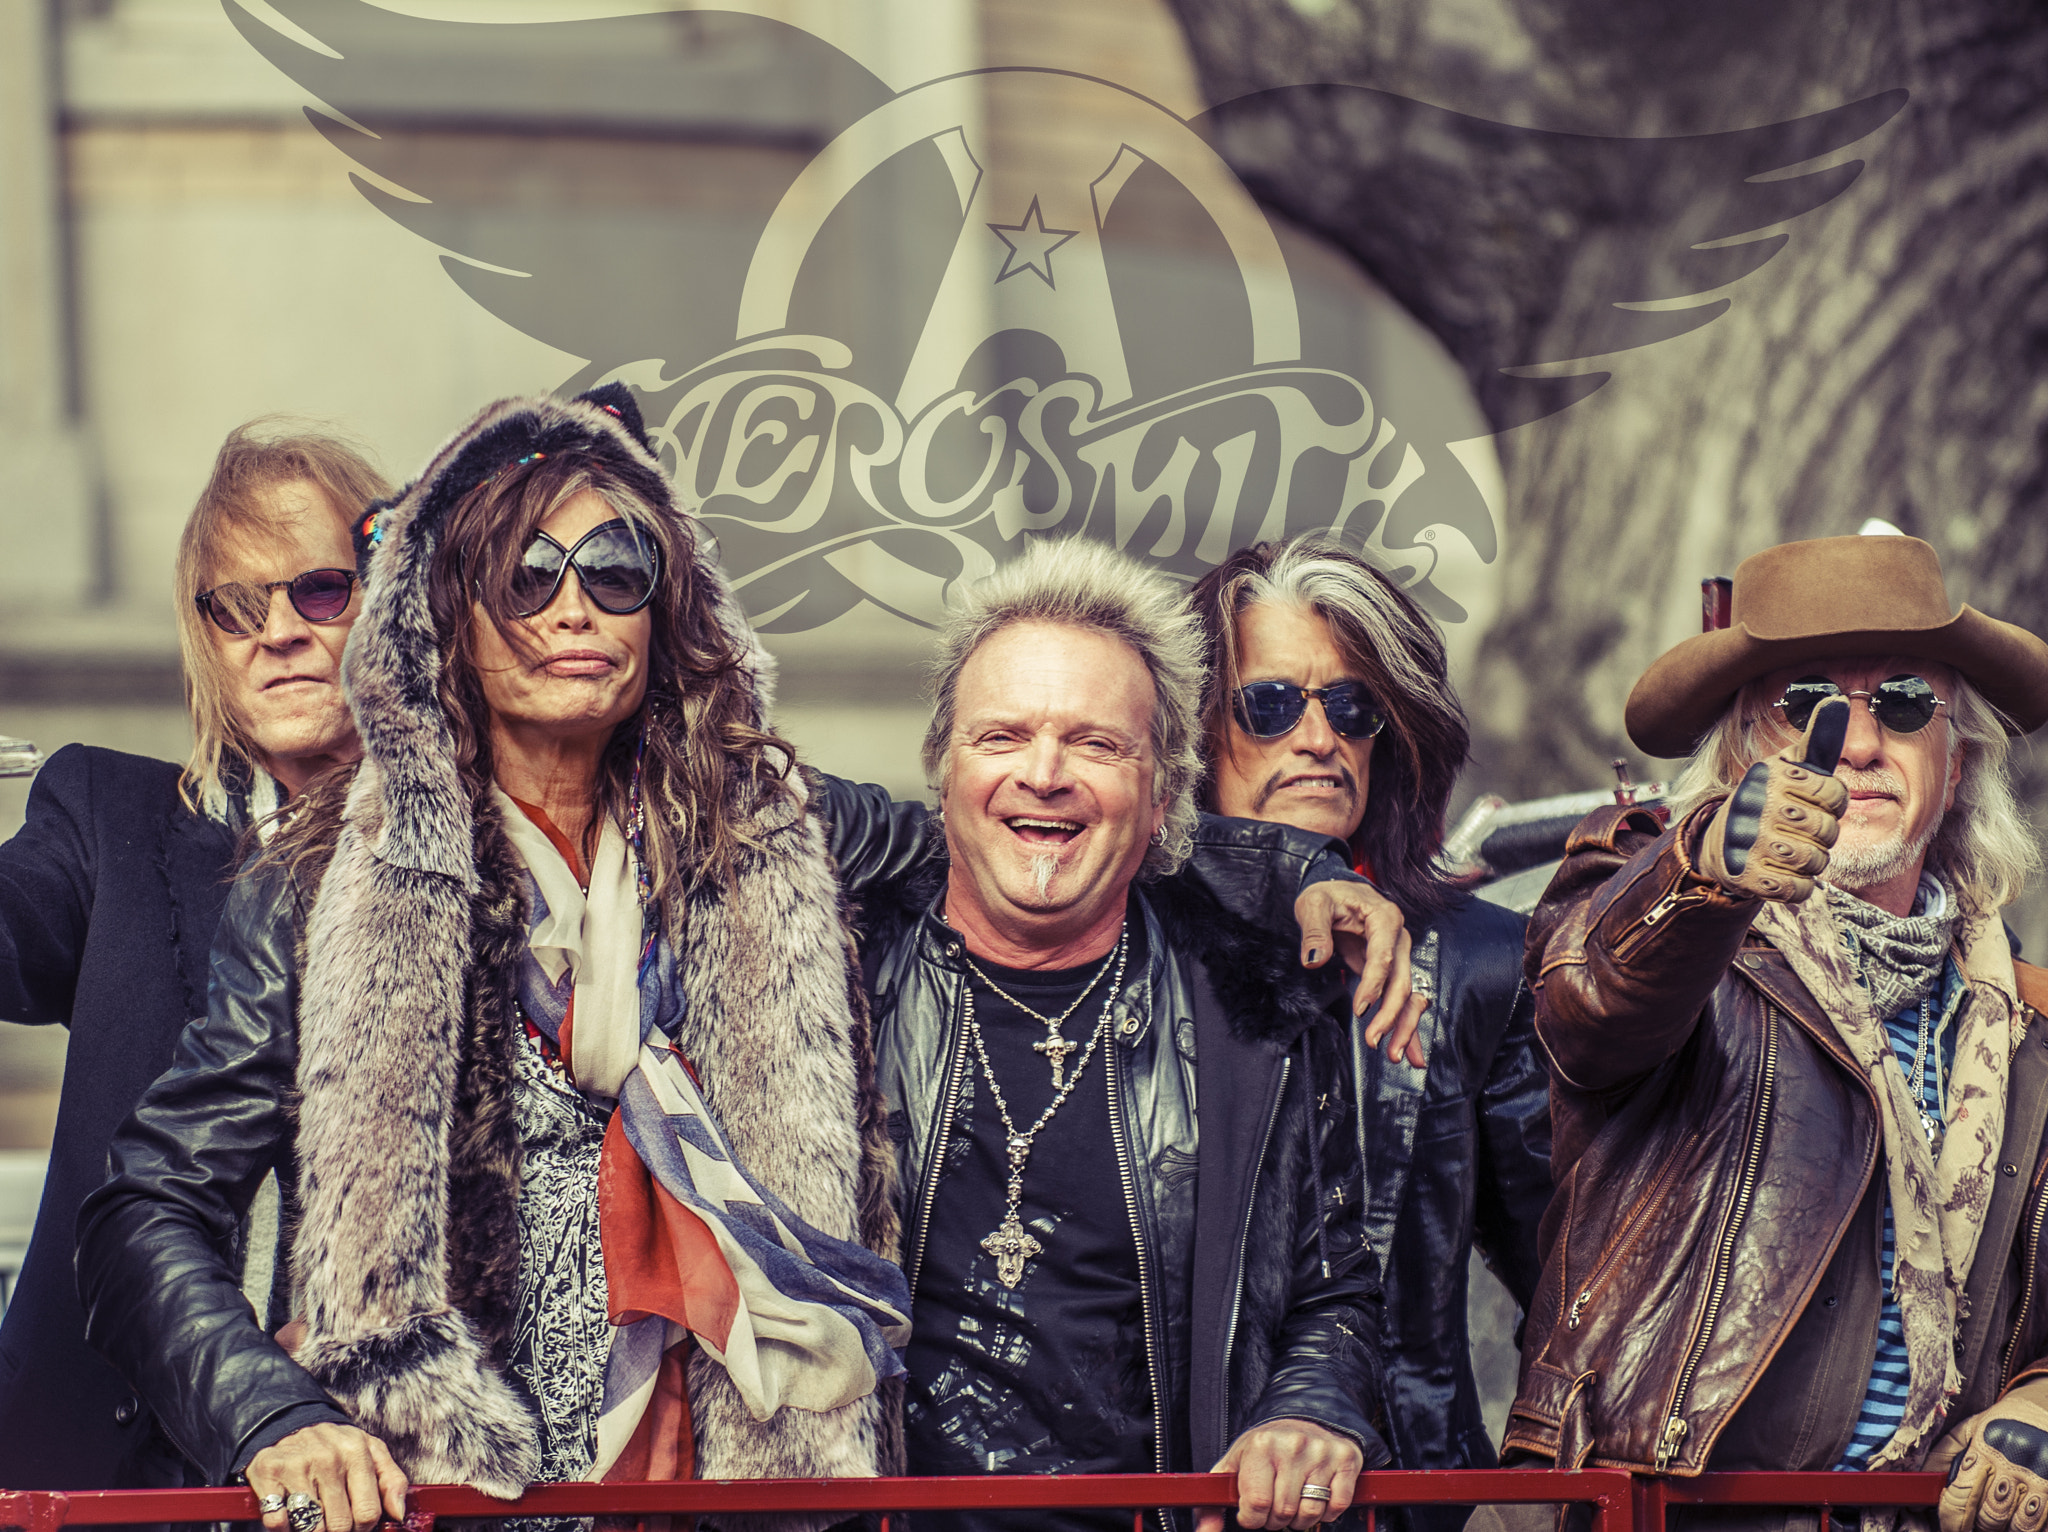 Photograph Aerosmith by Dylan Colon on 500px